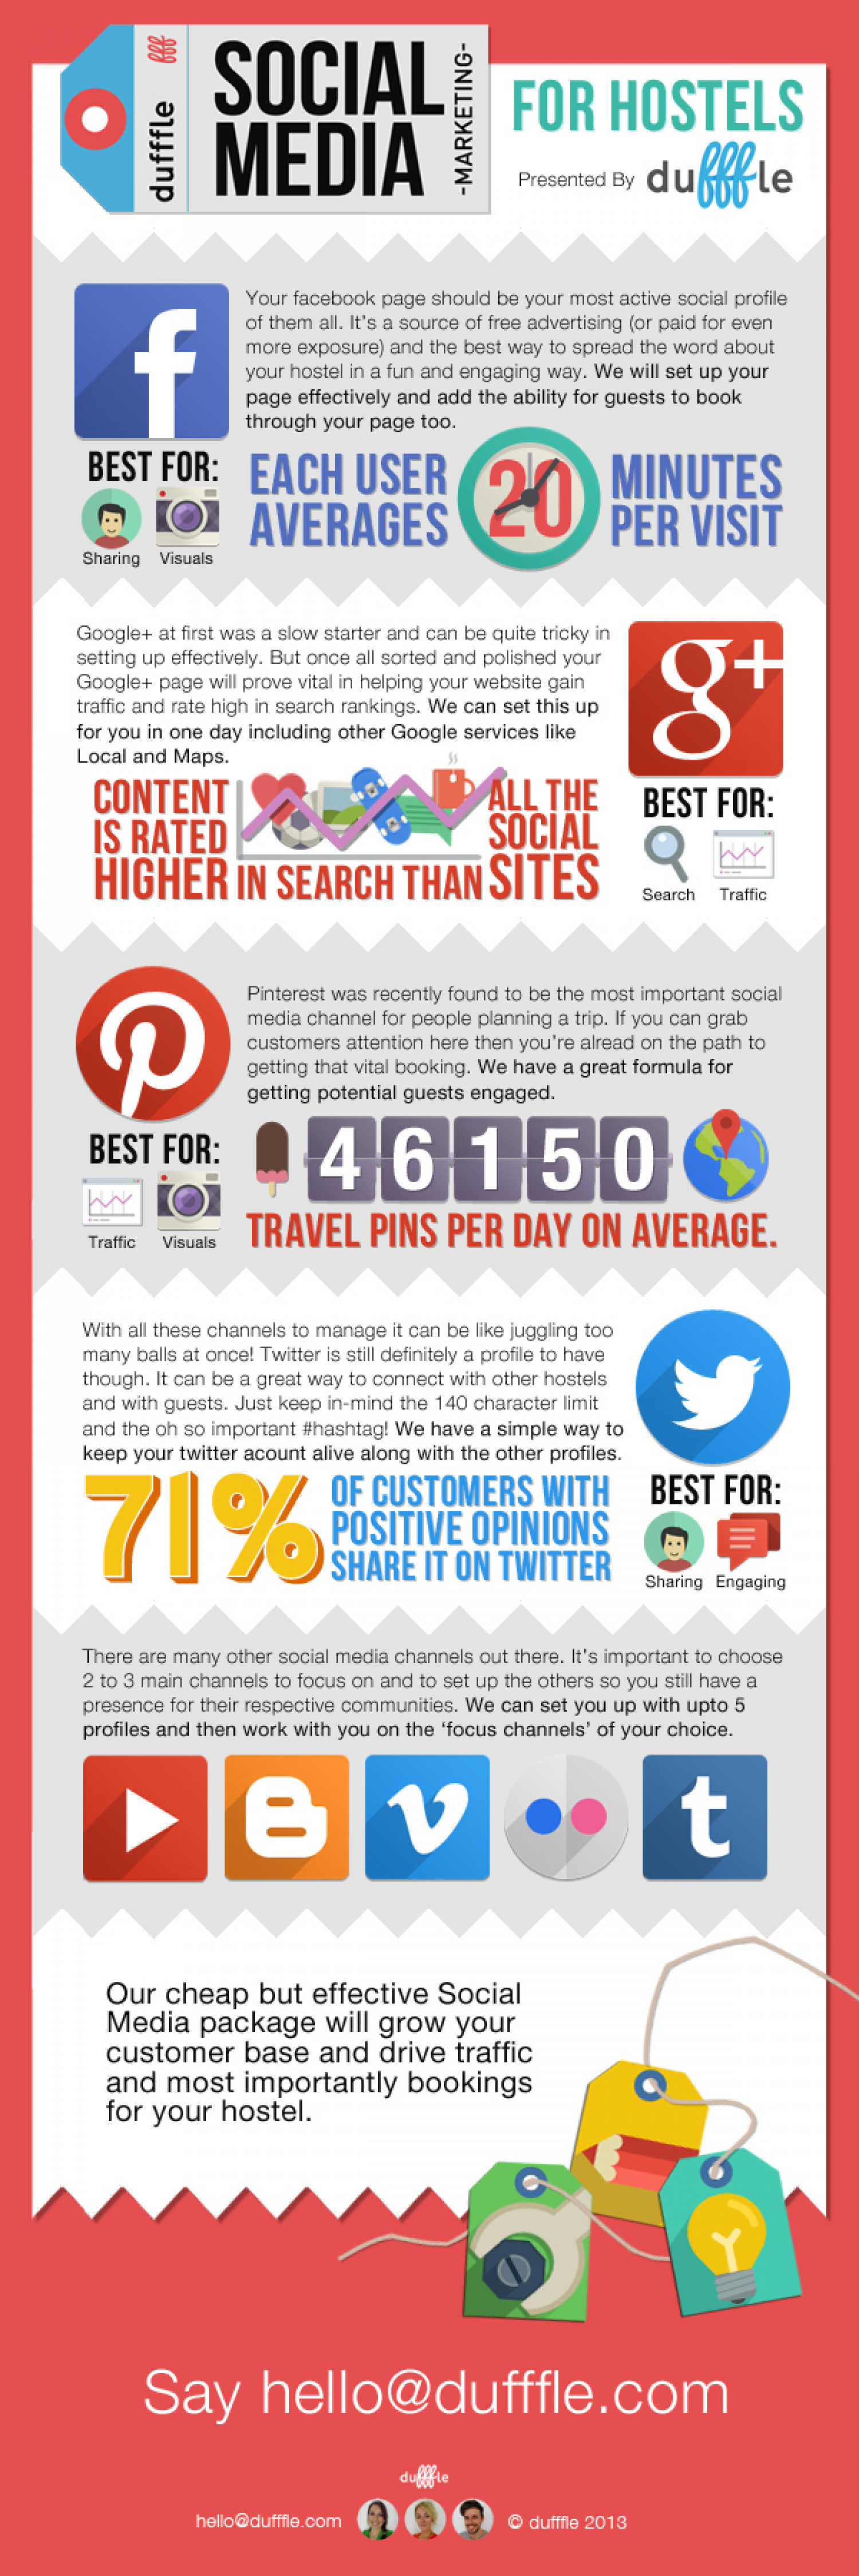 Social media for hostels Infographic